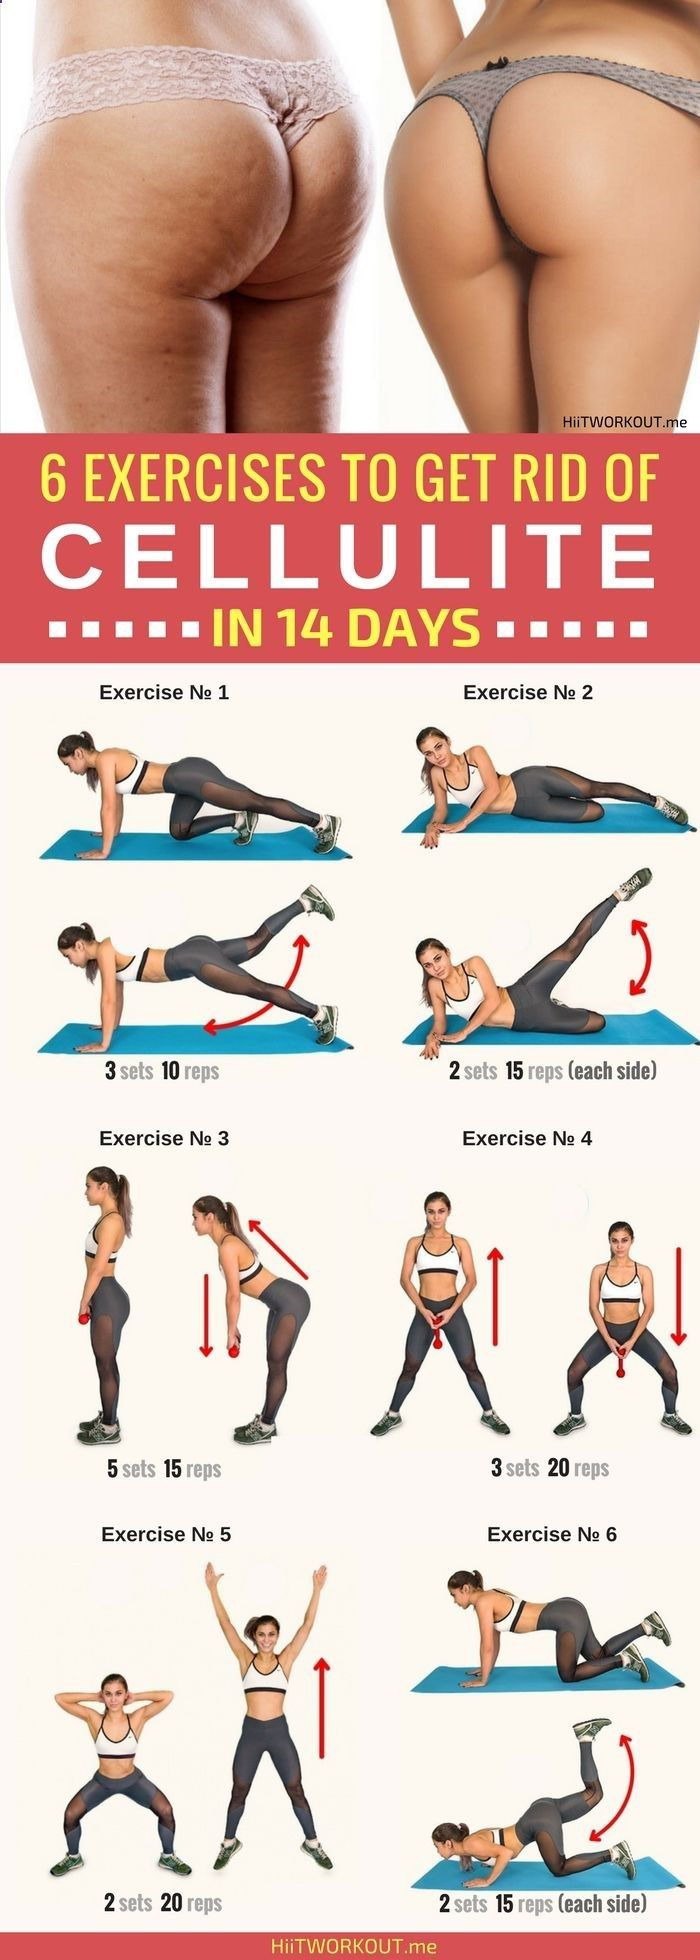 Lose Fat Belly Fast - 6 useful exercises designed to tighten the muscles and reduce the thighs and buttocks. Do This One Unusual 10-Minute Trick Before Work To Melt Away 15+ Pounds of Belly Fat